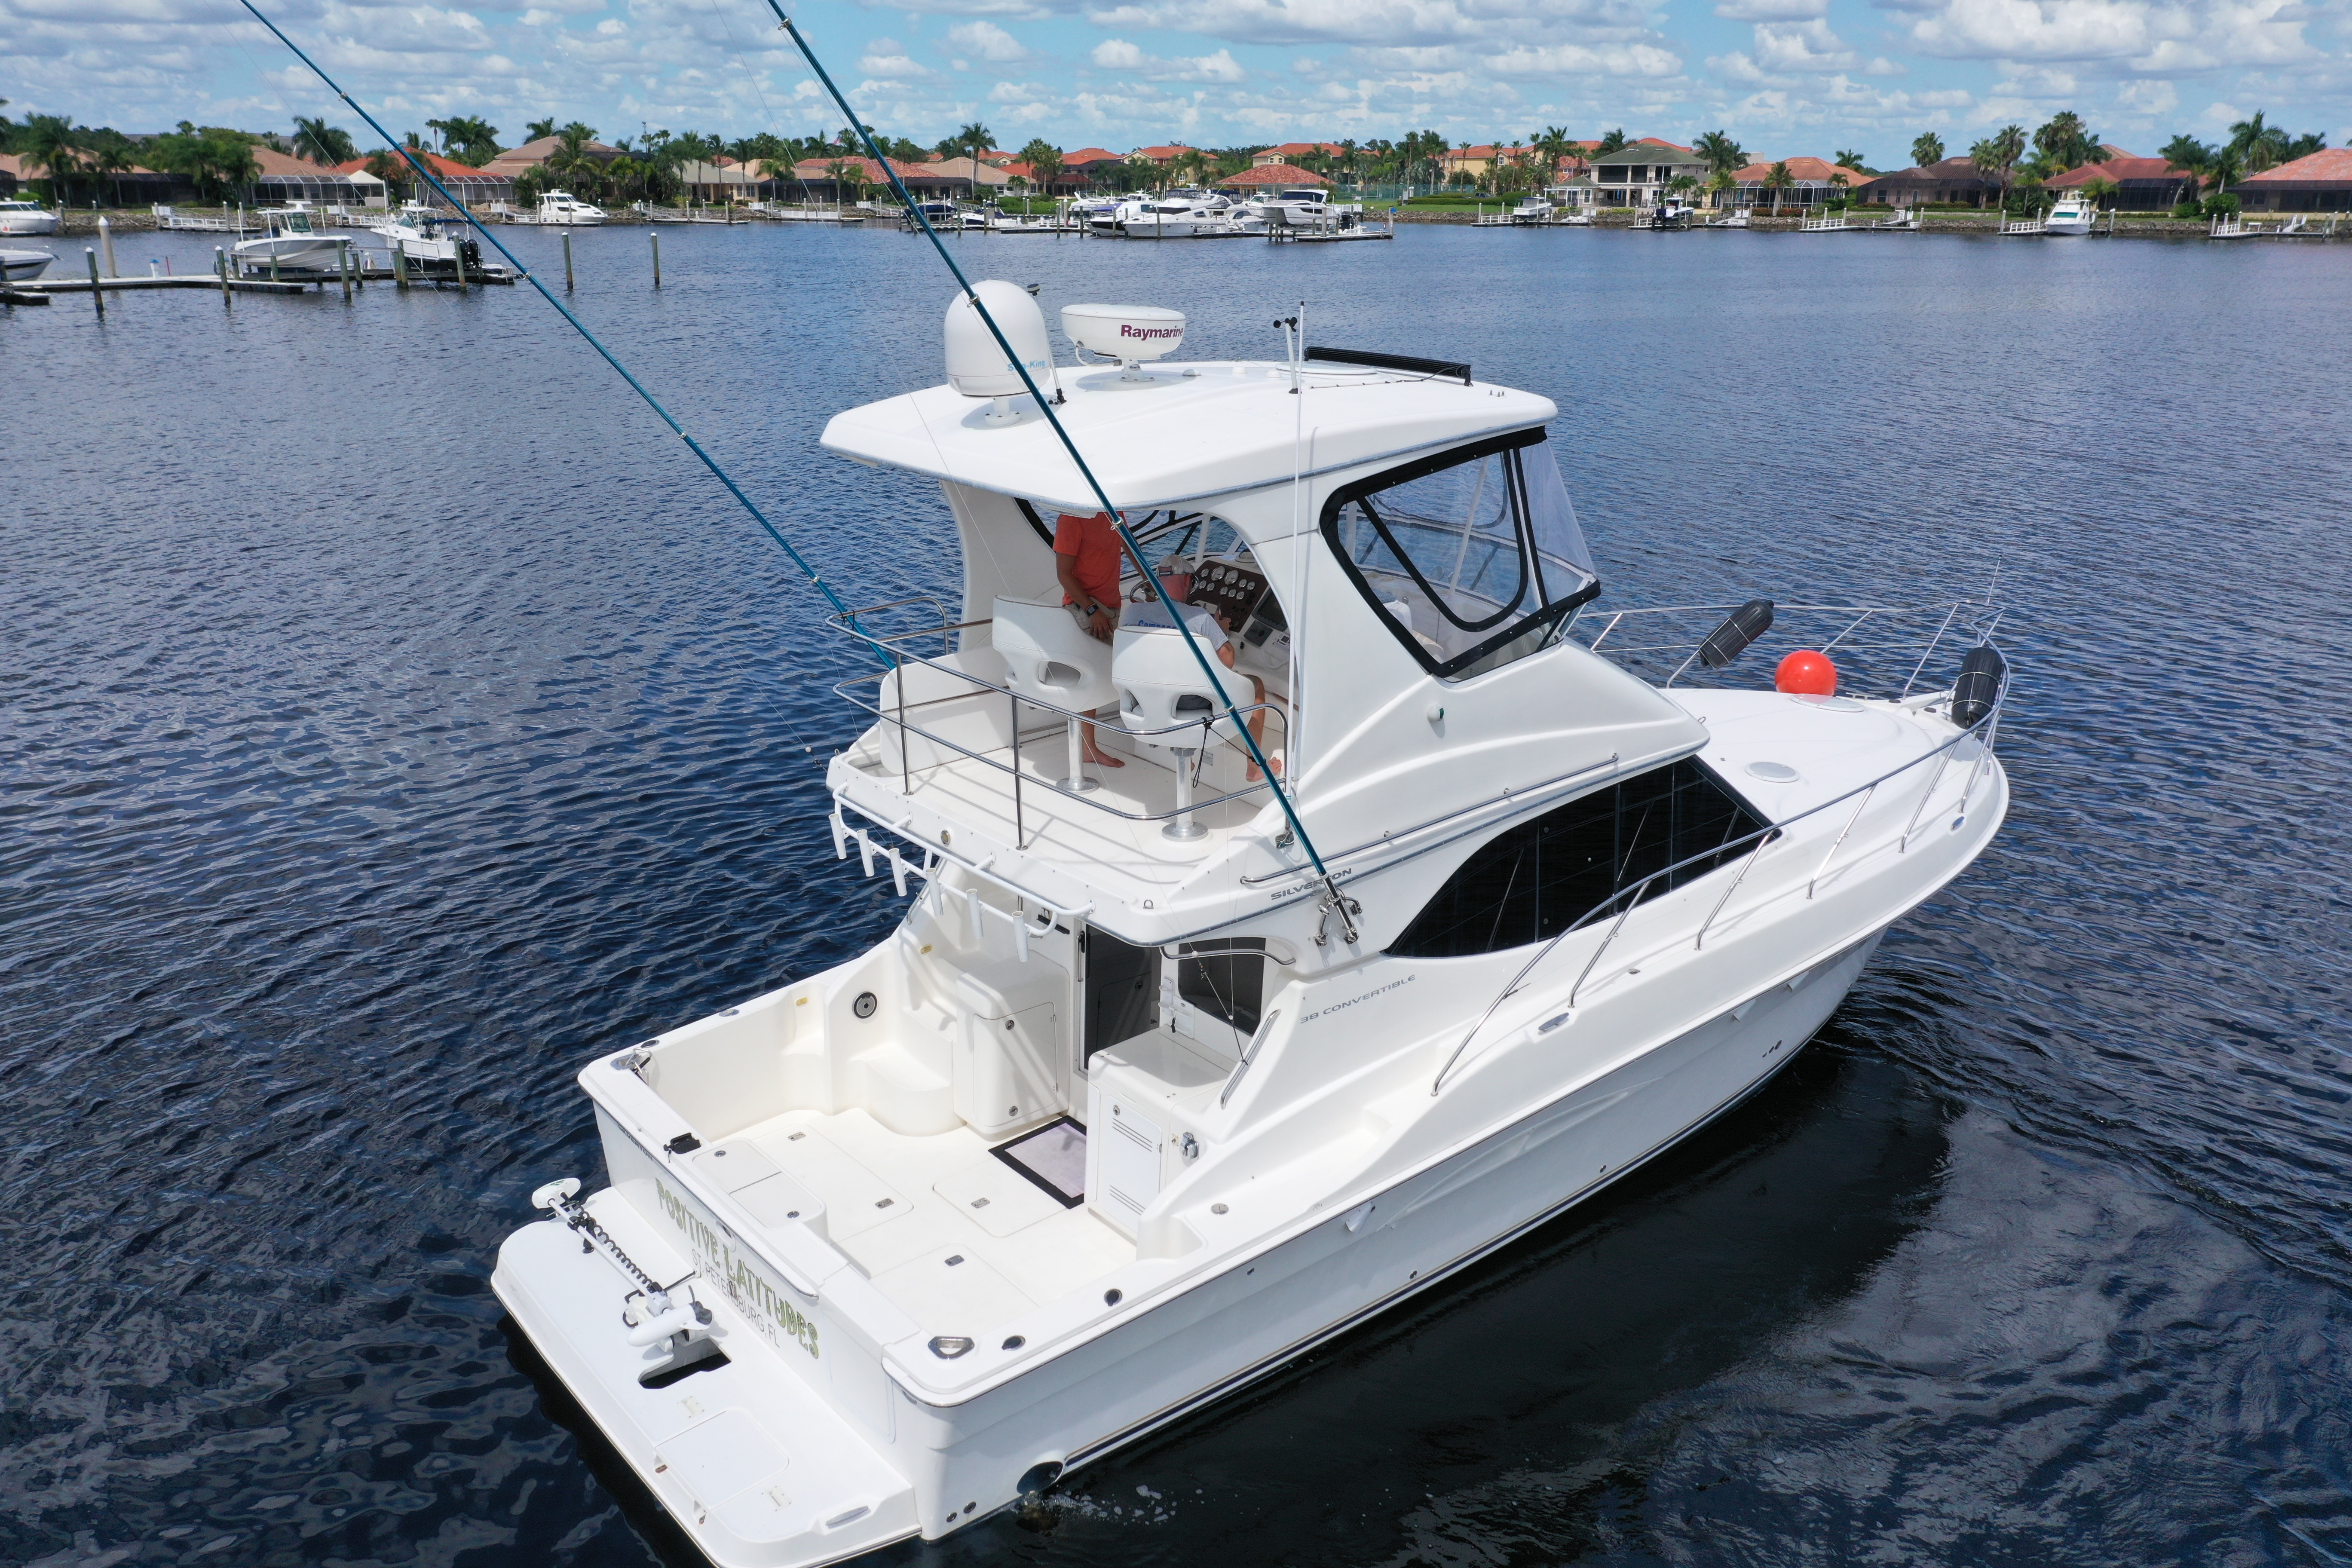 Silverton boats for sale in Florida - Boat Trader